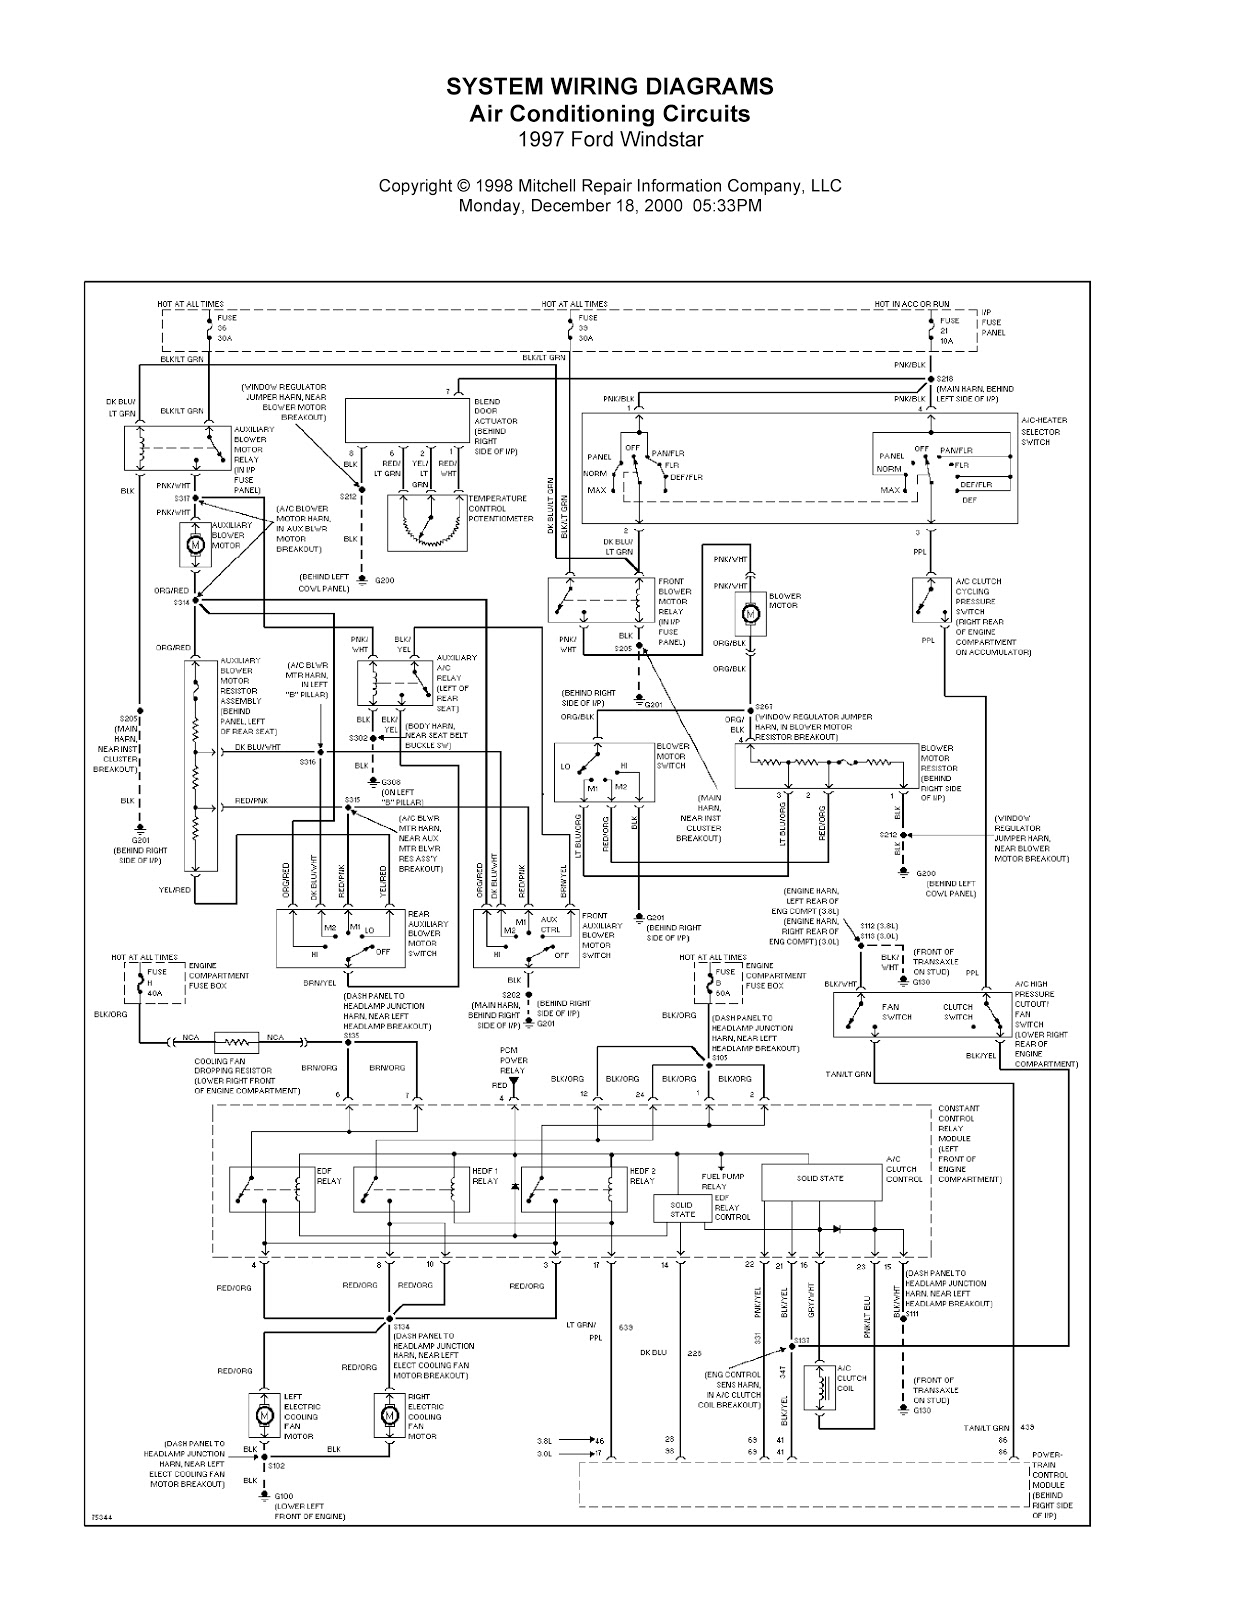 0001 2000 ford windstar wiring diagram ford windstar 3 8 engine diagram 2002 ford windstar fuse box diagram at edmiracle.co